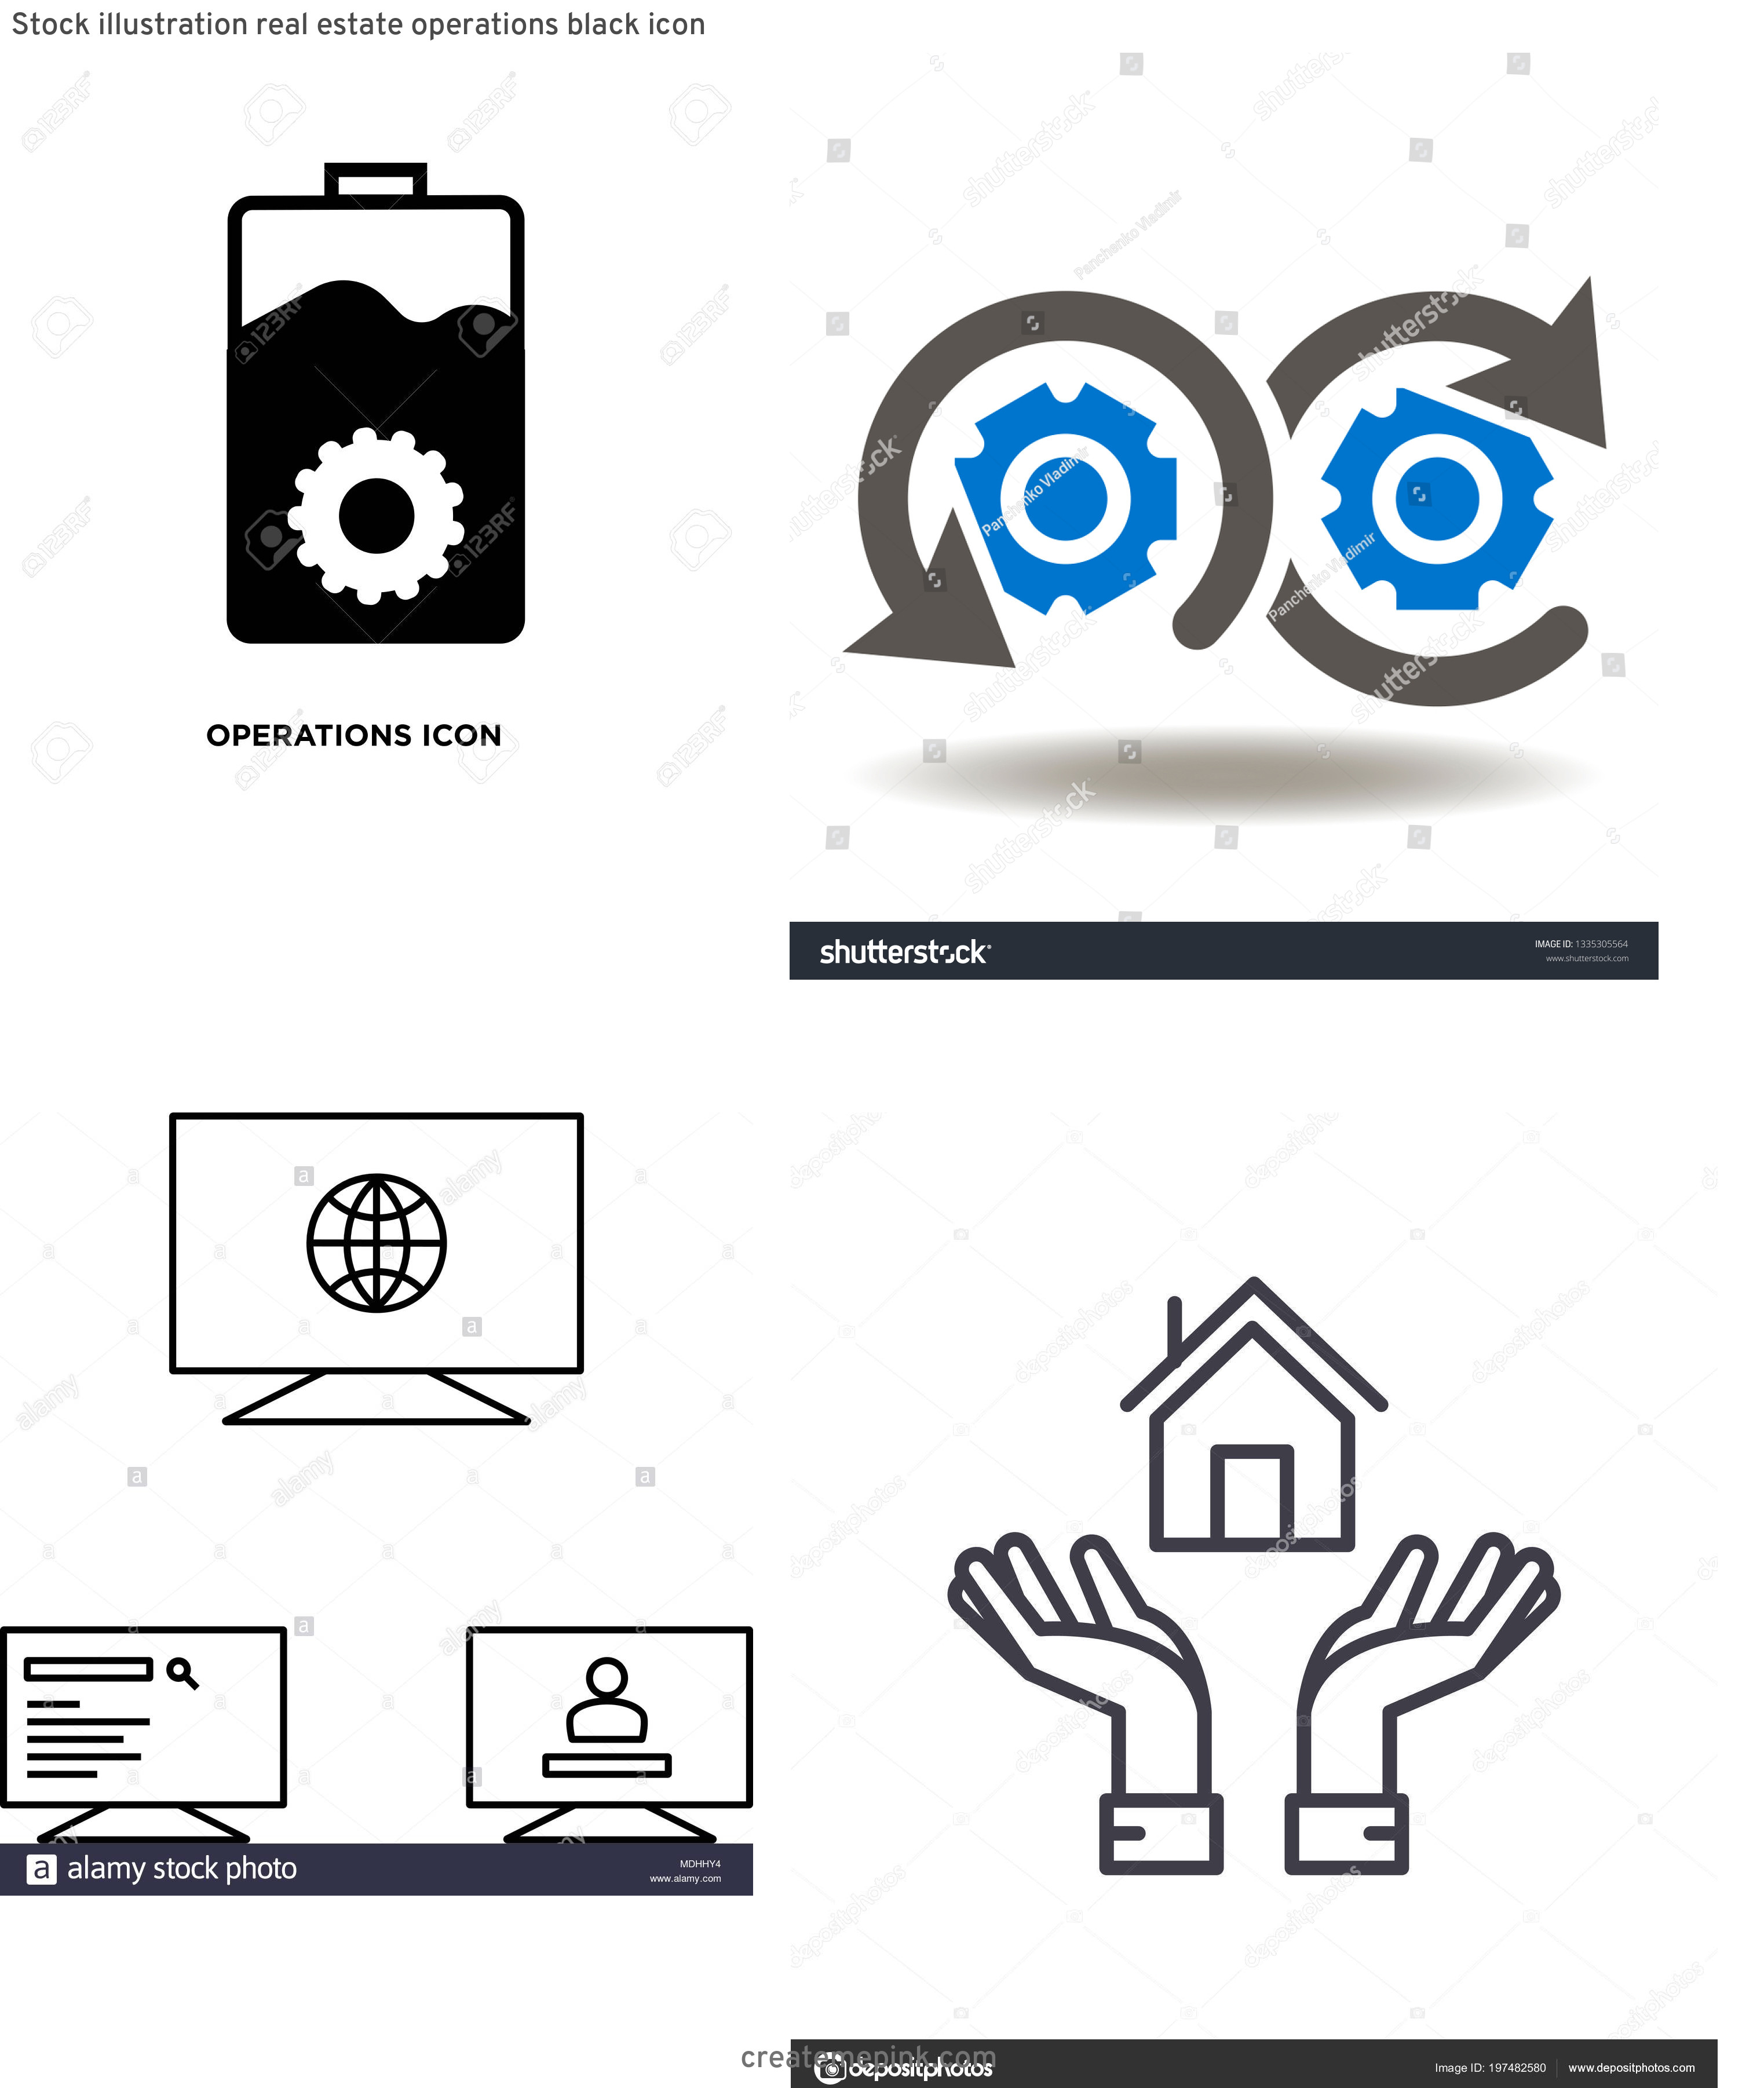 Operations Icon Vector: Stock Illustration Real Estate Operations Black Icon